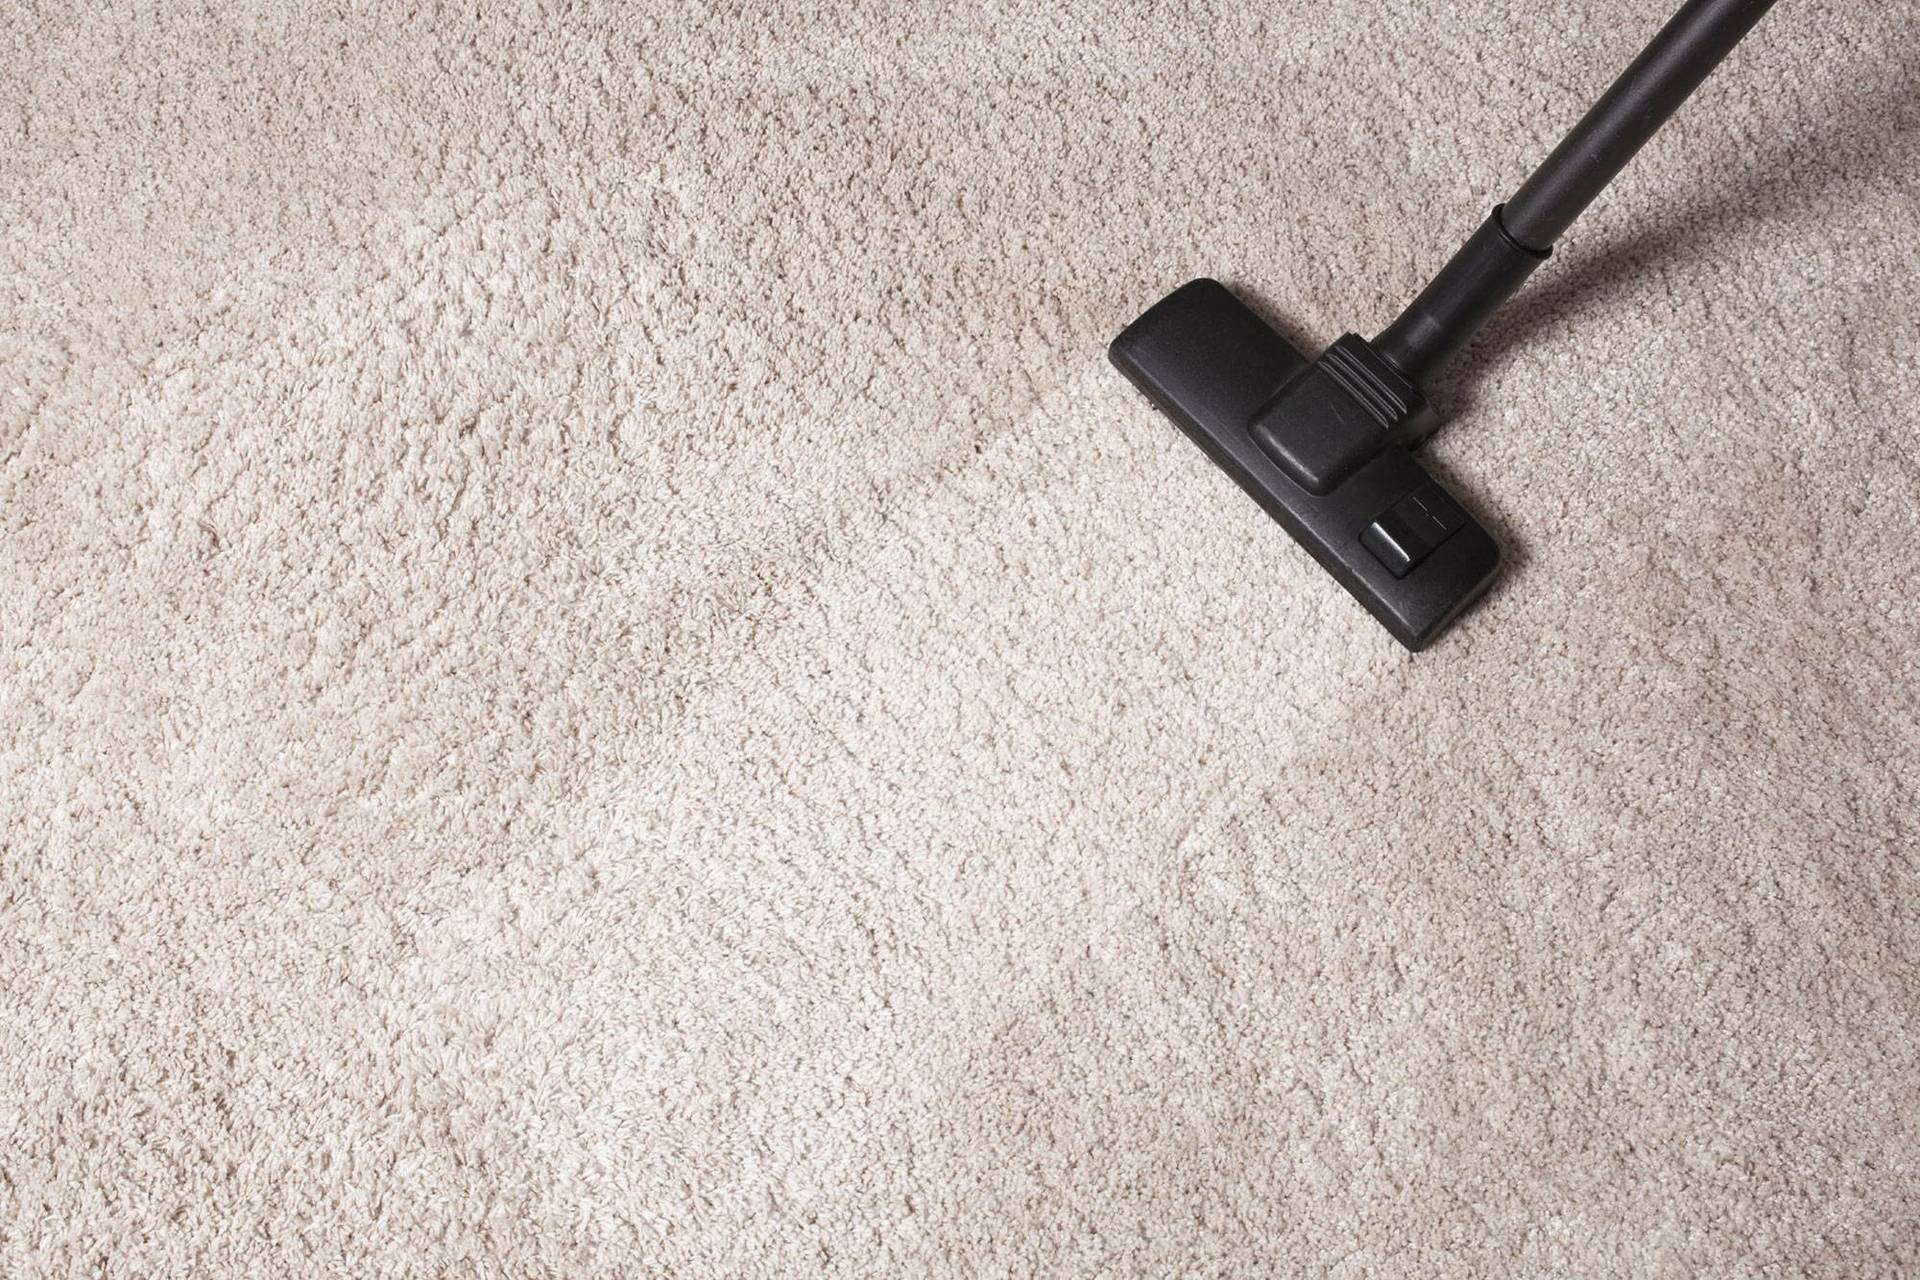 Make Carpet Cleaning Costa Mesa Stress-free With These Easy Tips! image